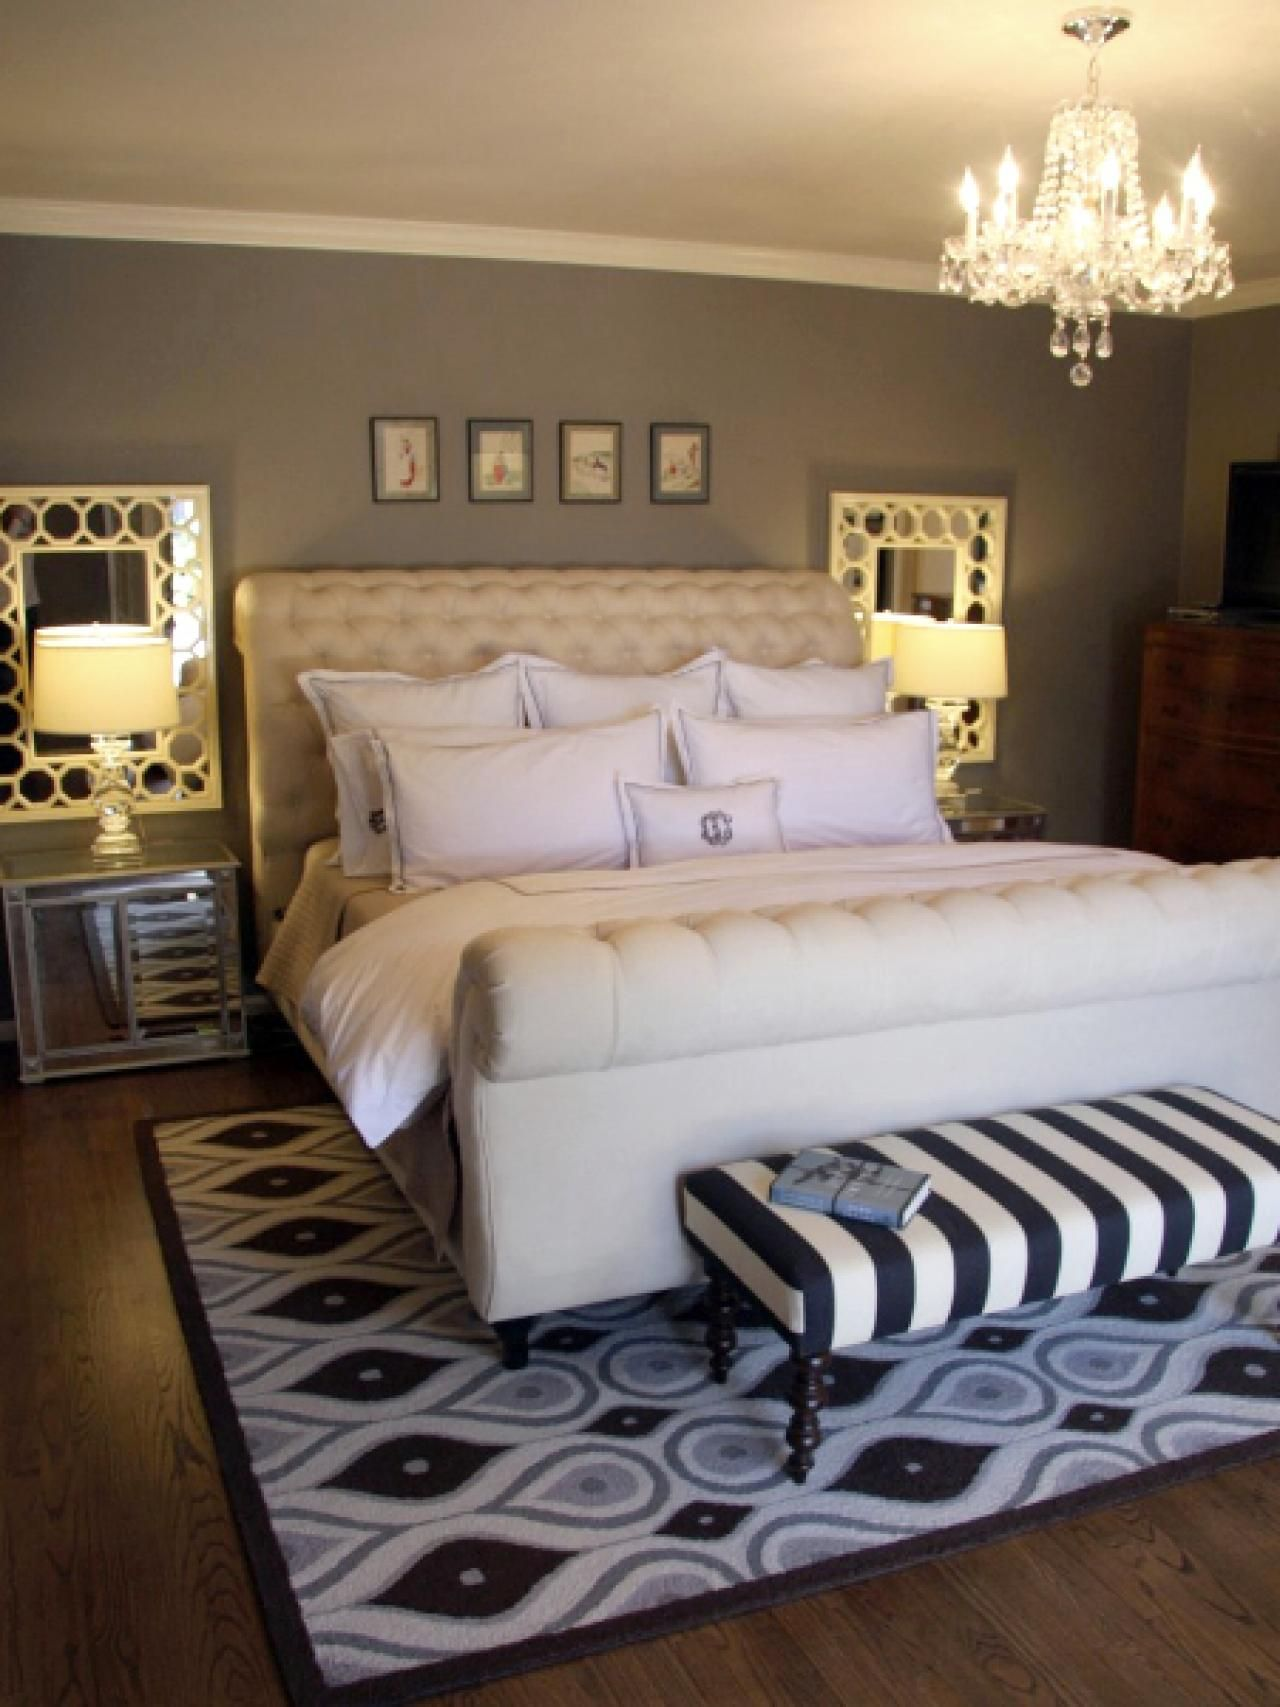 Couples Bedroom Designs Easy Things That You Could Do To Improve Your Home's Interior